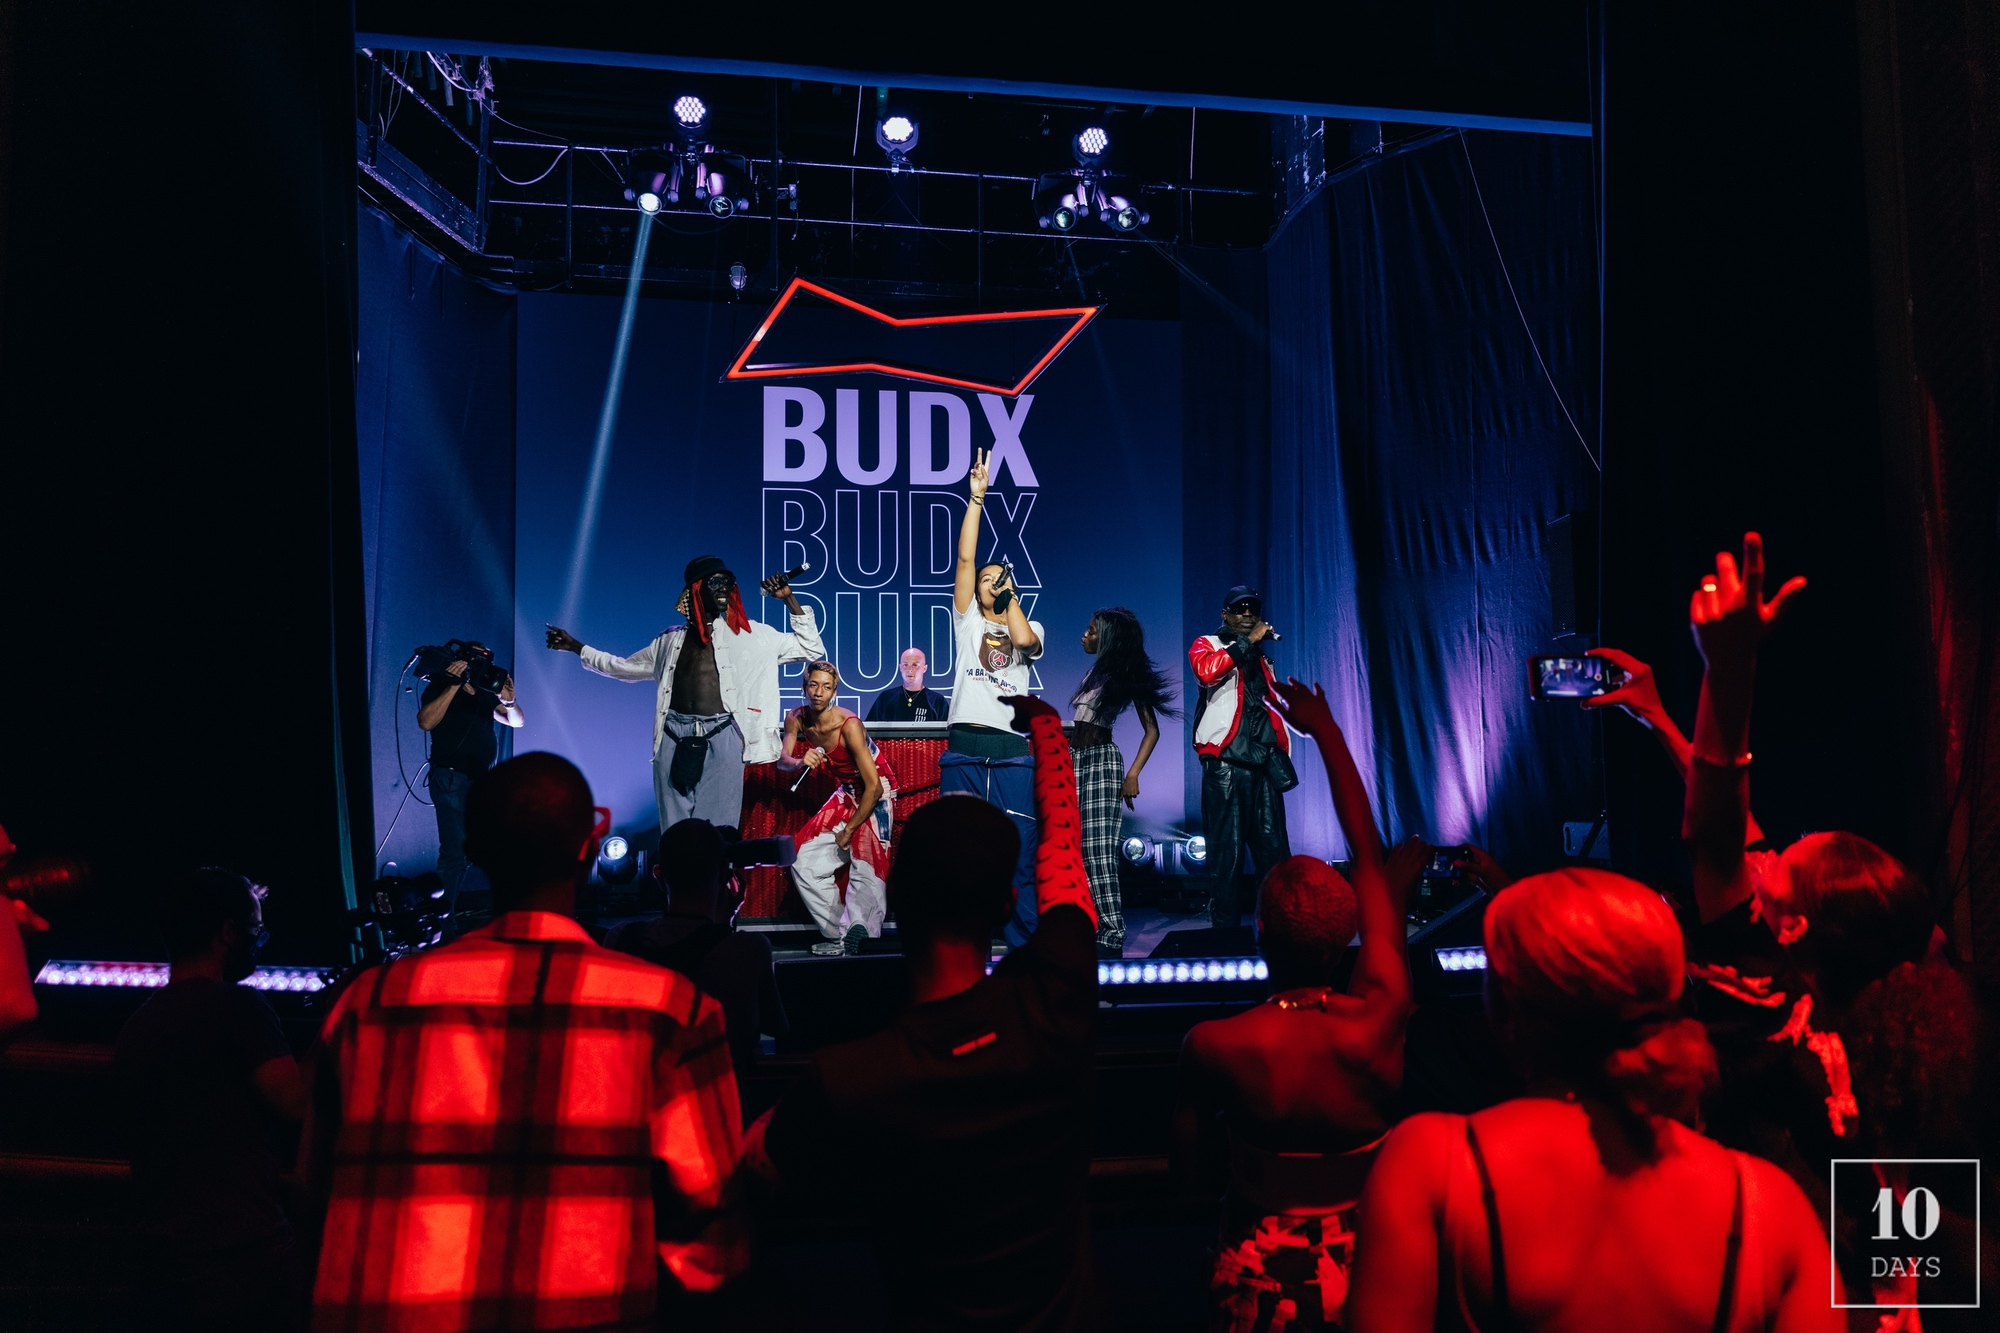 BUDX / Lala &ce x Blase – SP&CIAL Release Performance arthur mestrot